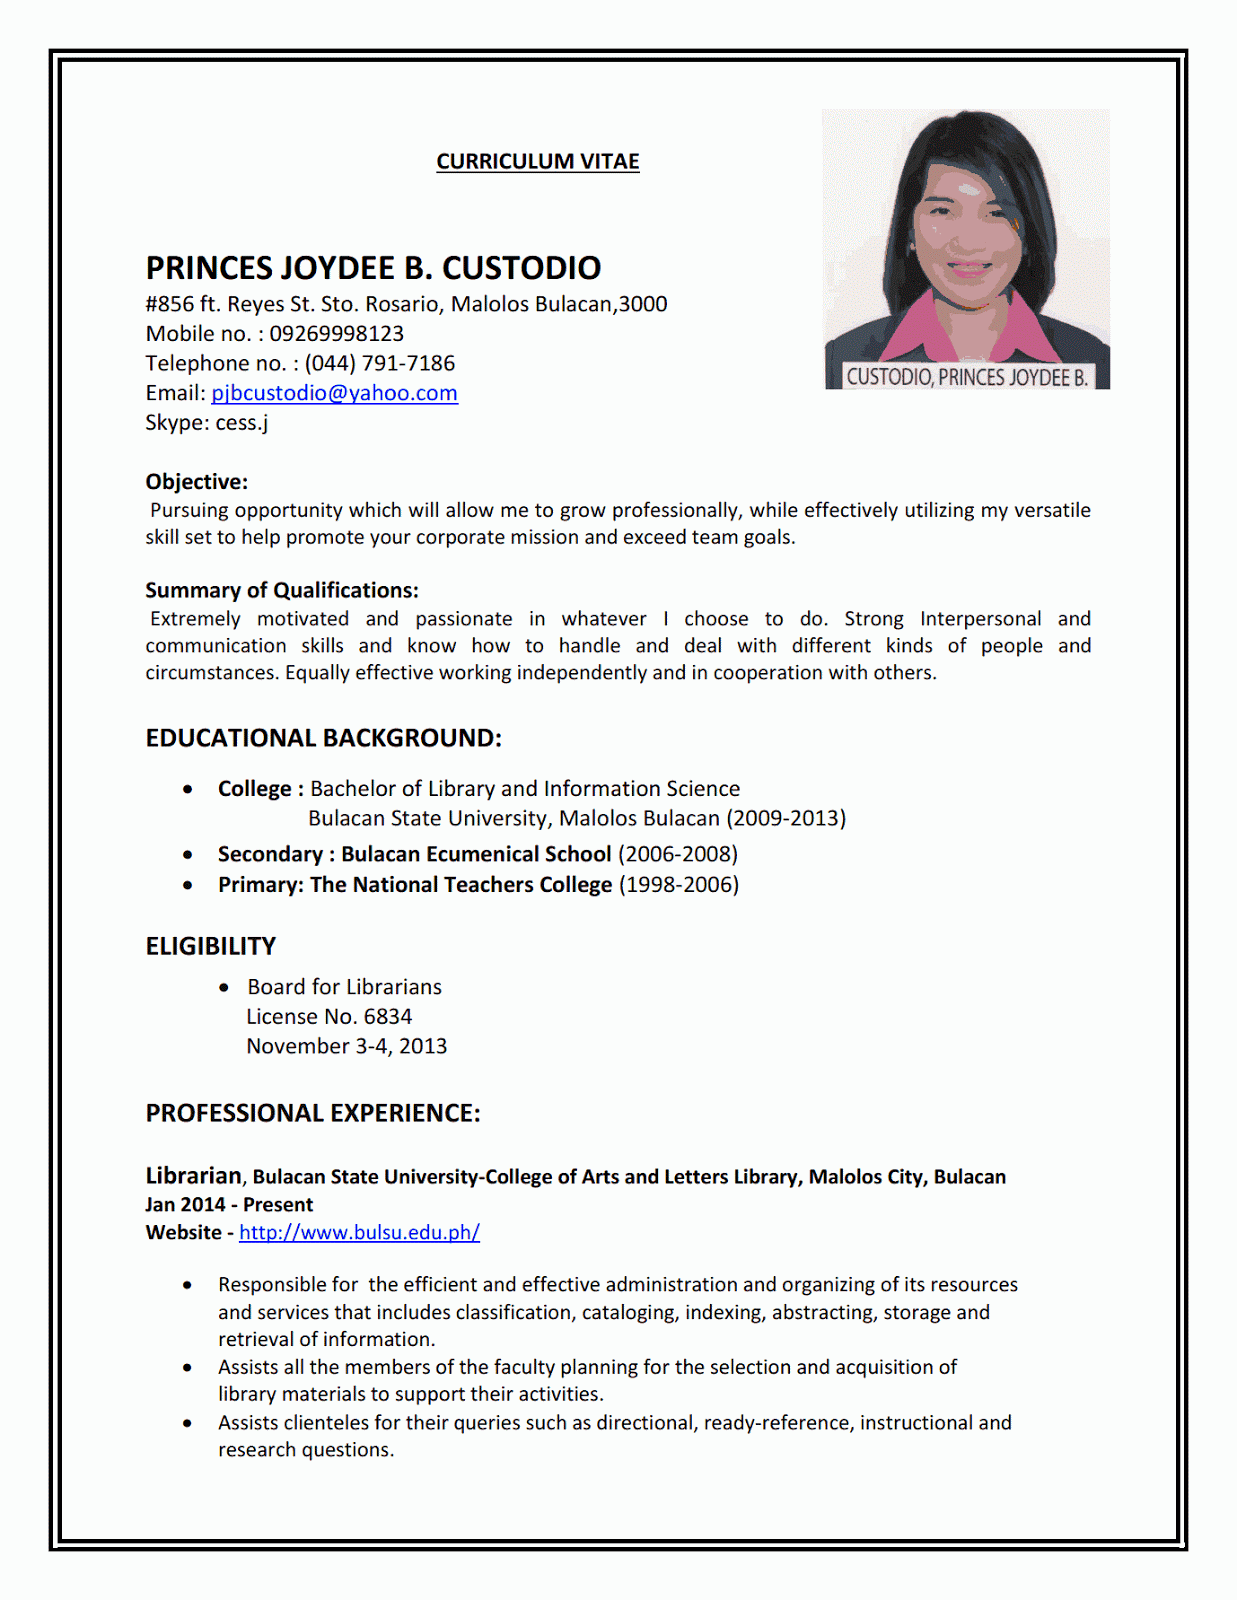 resume for job sample perfect | Home Design Idea | Pinterest ...